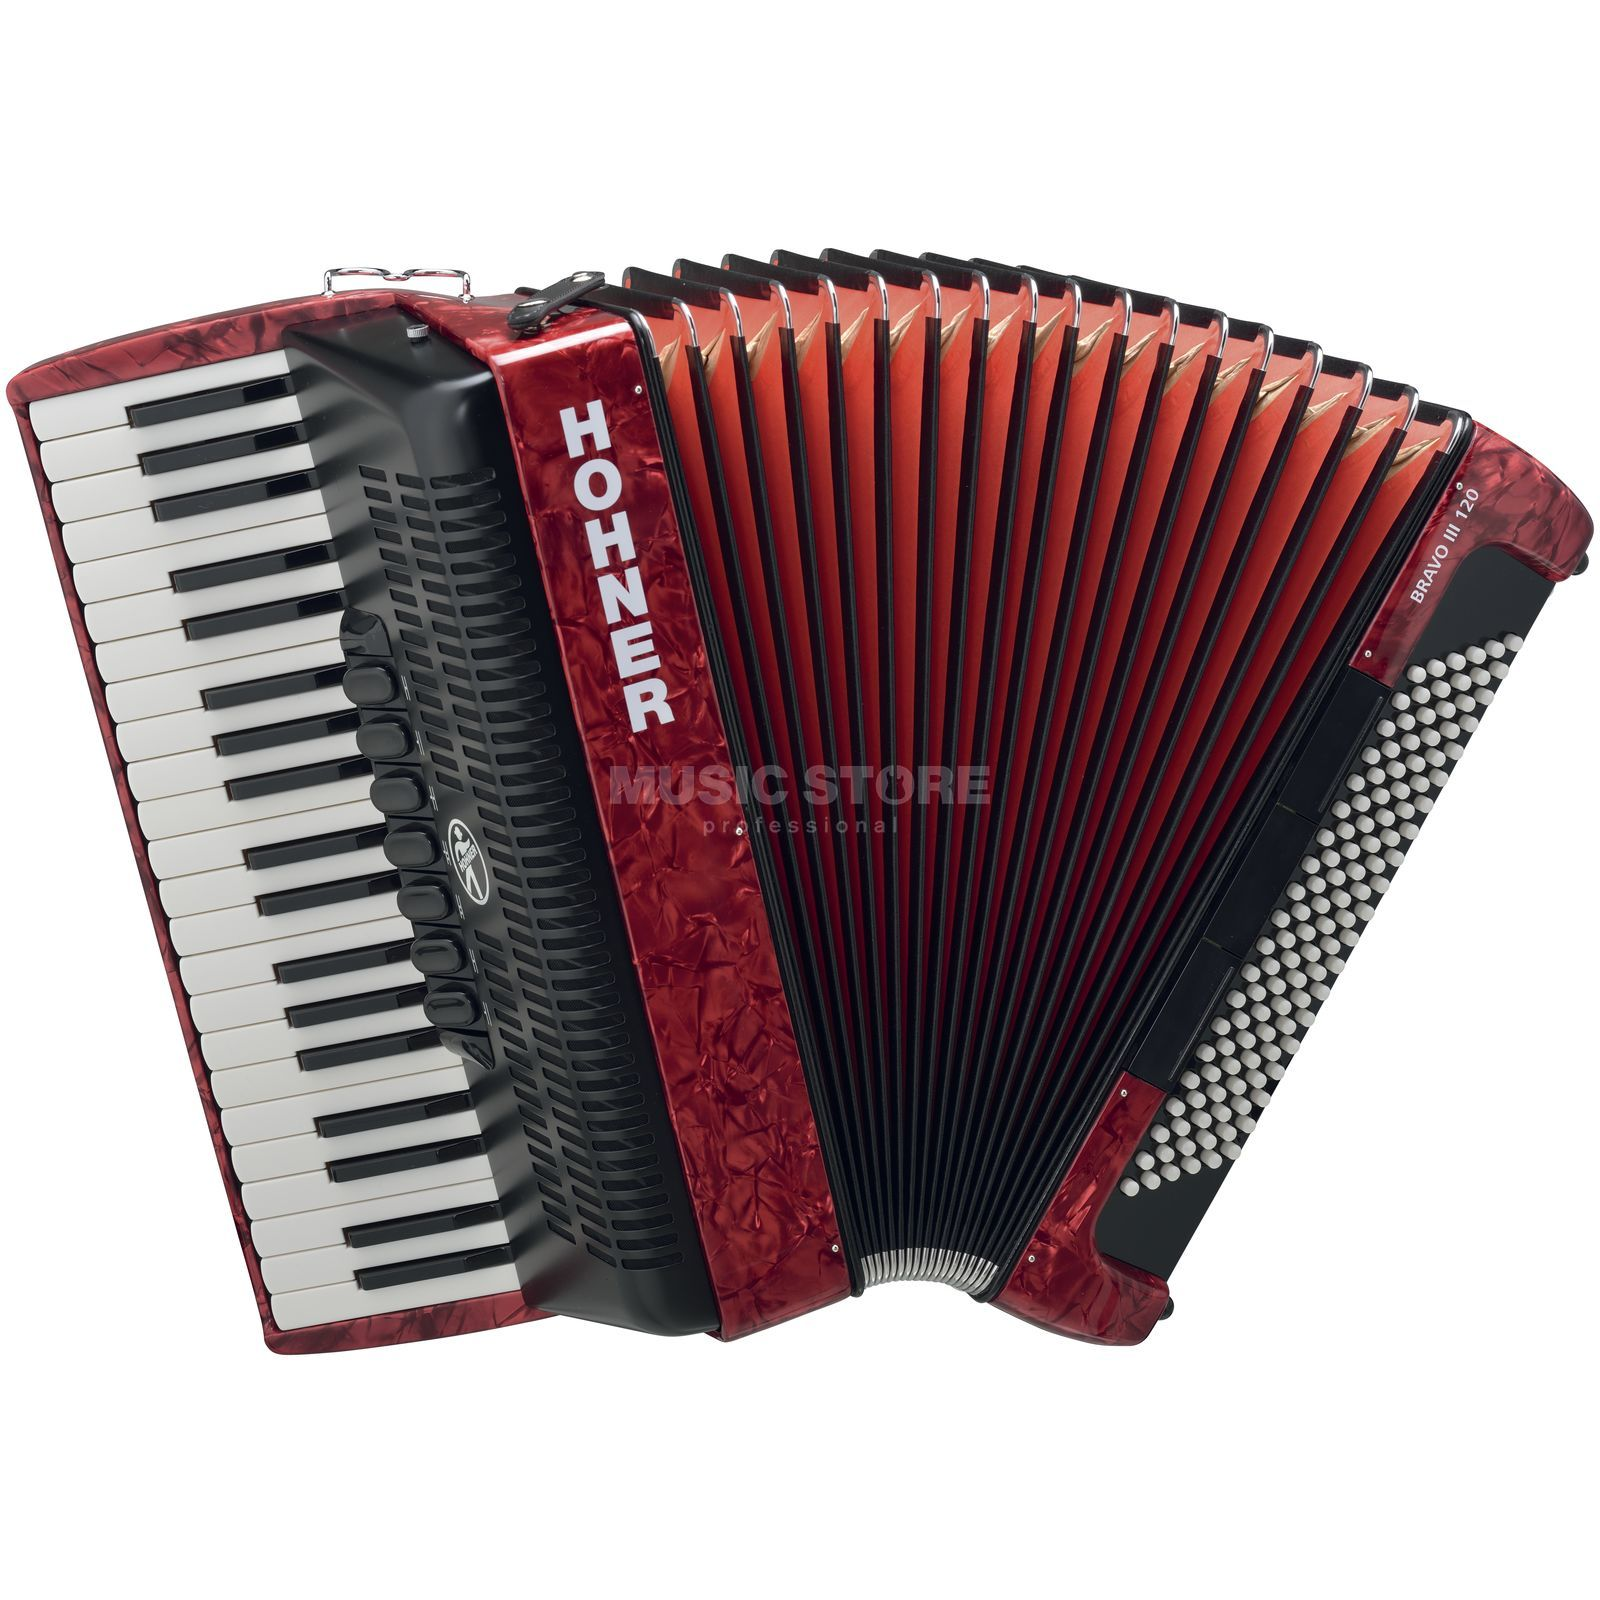 Hohner Piano-Accordion Bravo III 96 red, design 2 Produktbillede